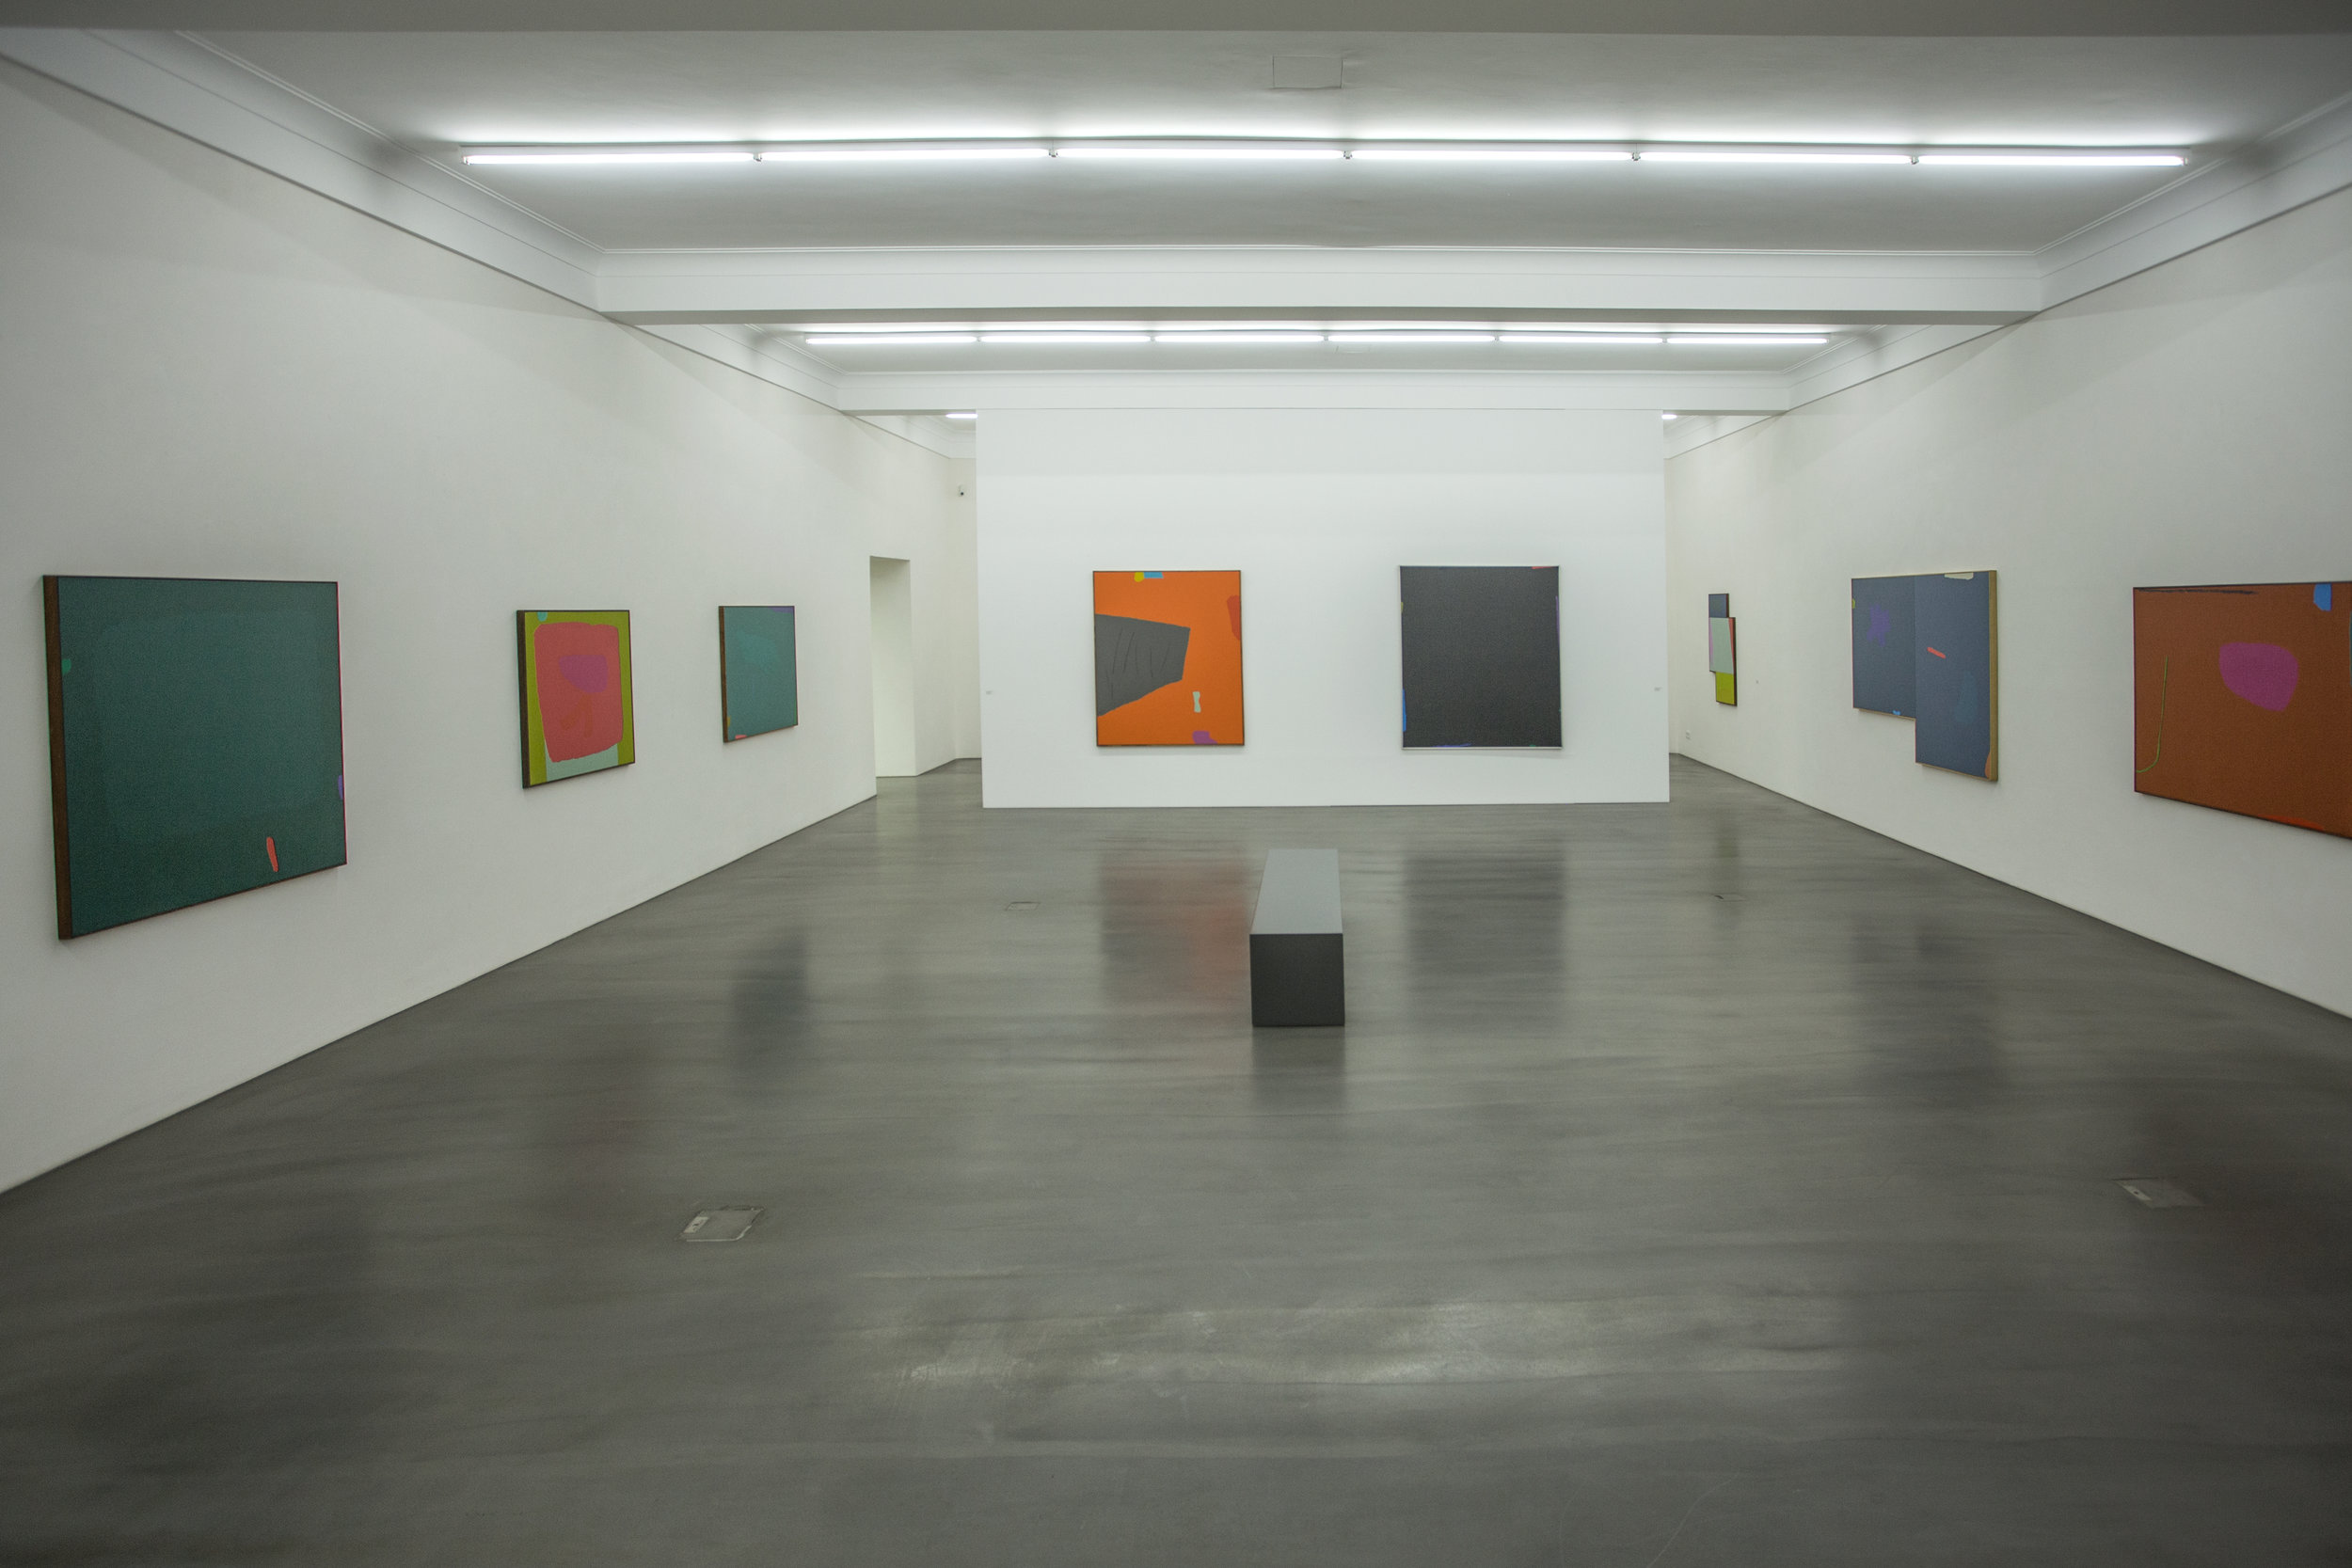 """(From left to right)    Dorothy Fratt   's room -    """"colourful.frabenfroh   """" exhibition:  """" Secret Green """" (1985), """" Red and Green """" (1975), """" Talo with Chaser """" (1983-1987), """" Laban's Staves """" (1991),  untitled  (1987), """" Along Night's Measure """" n.d., """" Odyssey """" (1987)  and  """" Sedona Green Line"""""""